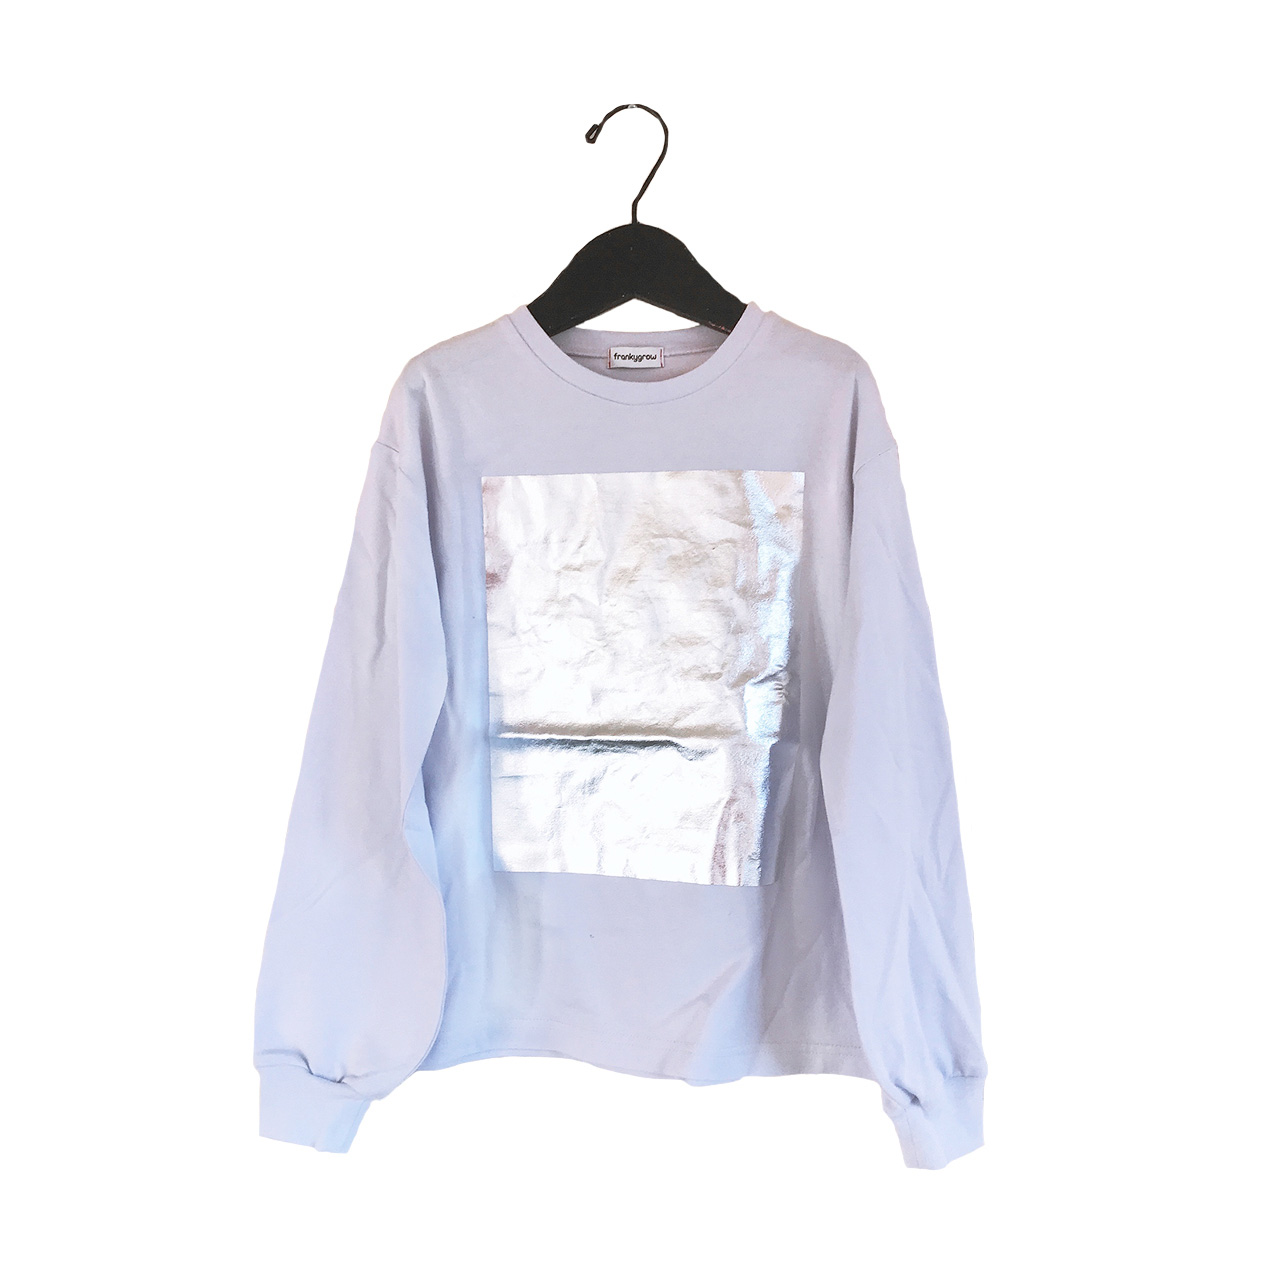 ●frankygrow SQUARE FOIL L/S TEE / WOMEN パープル